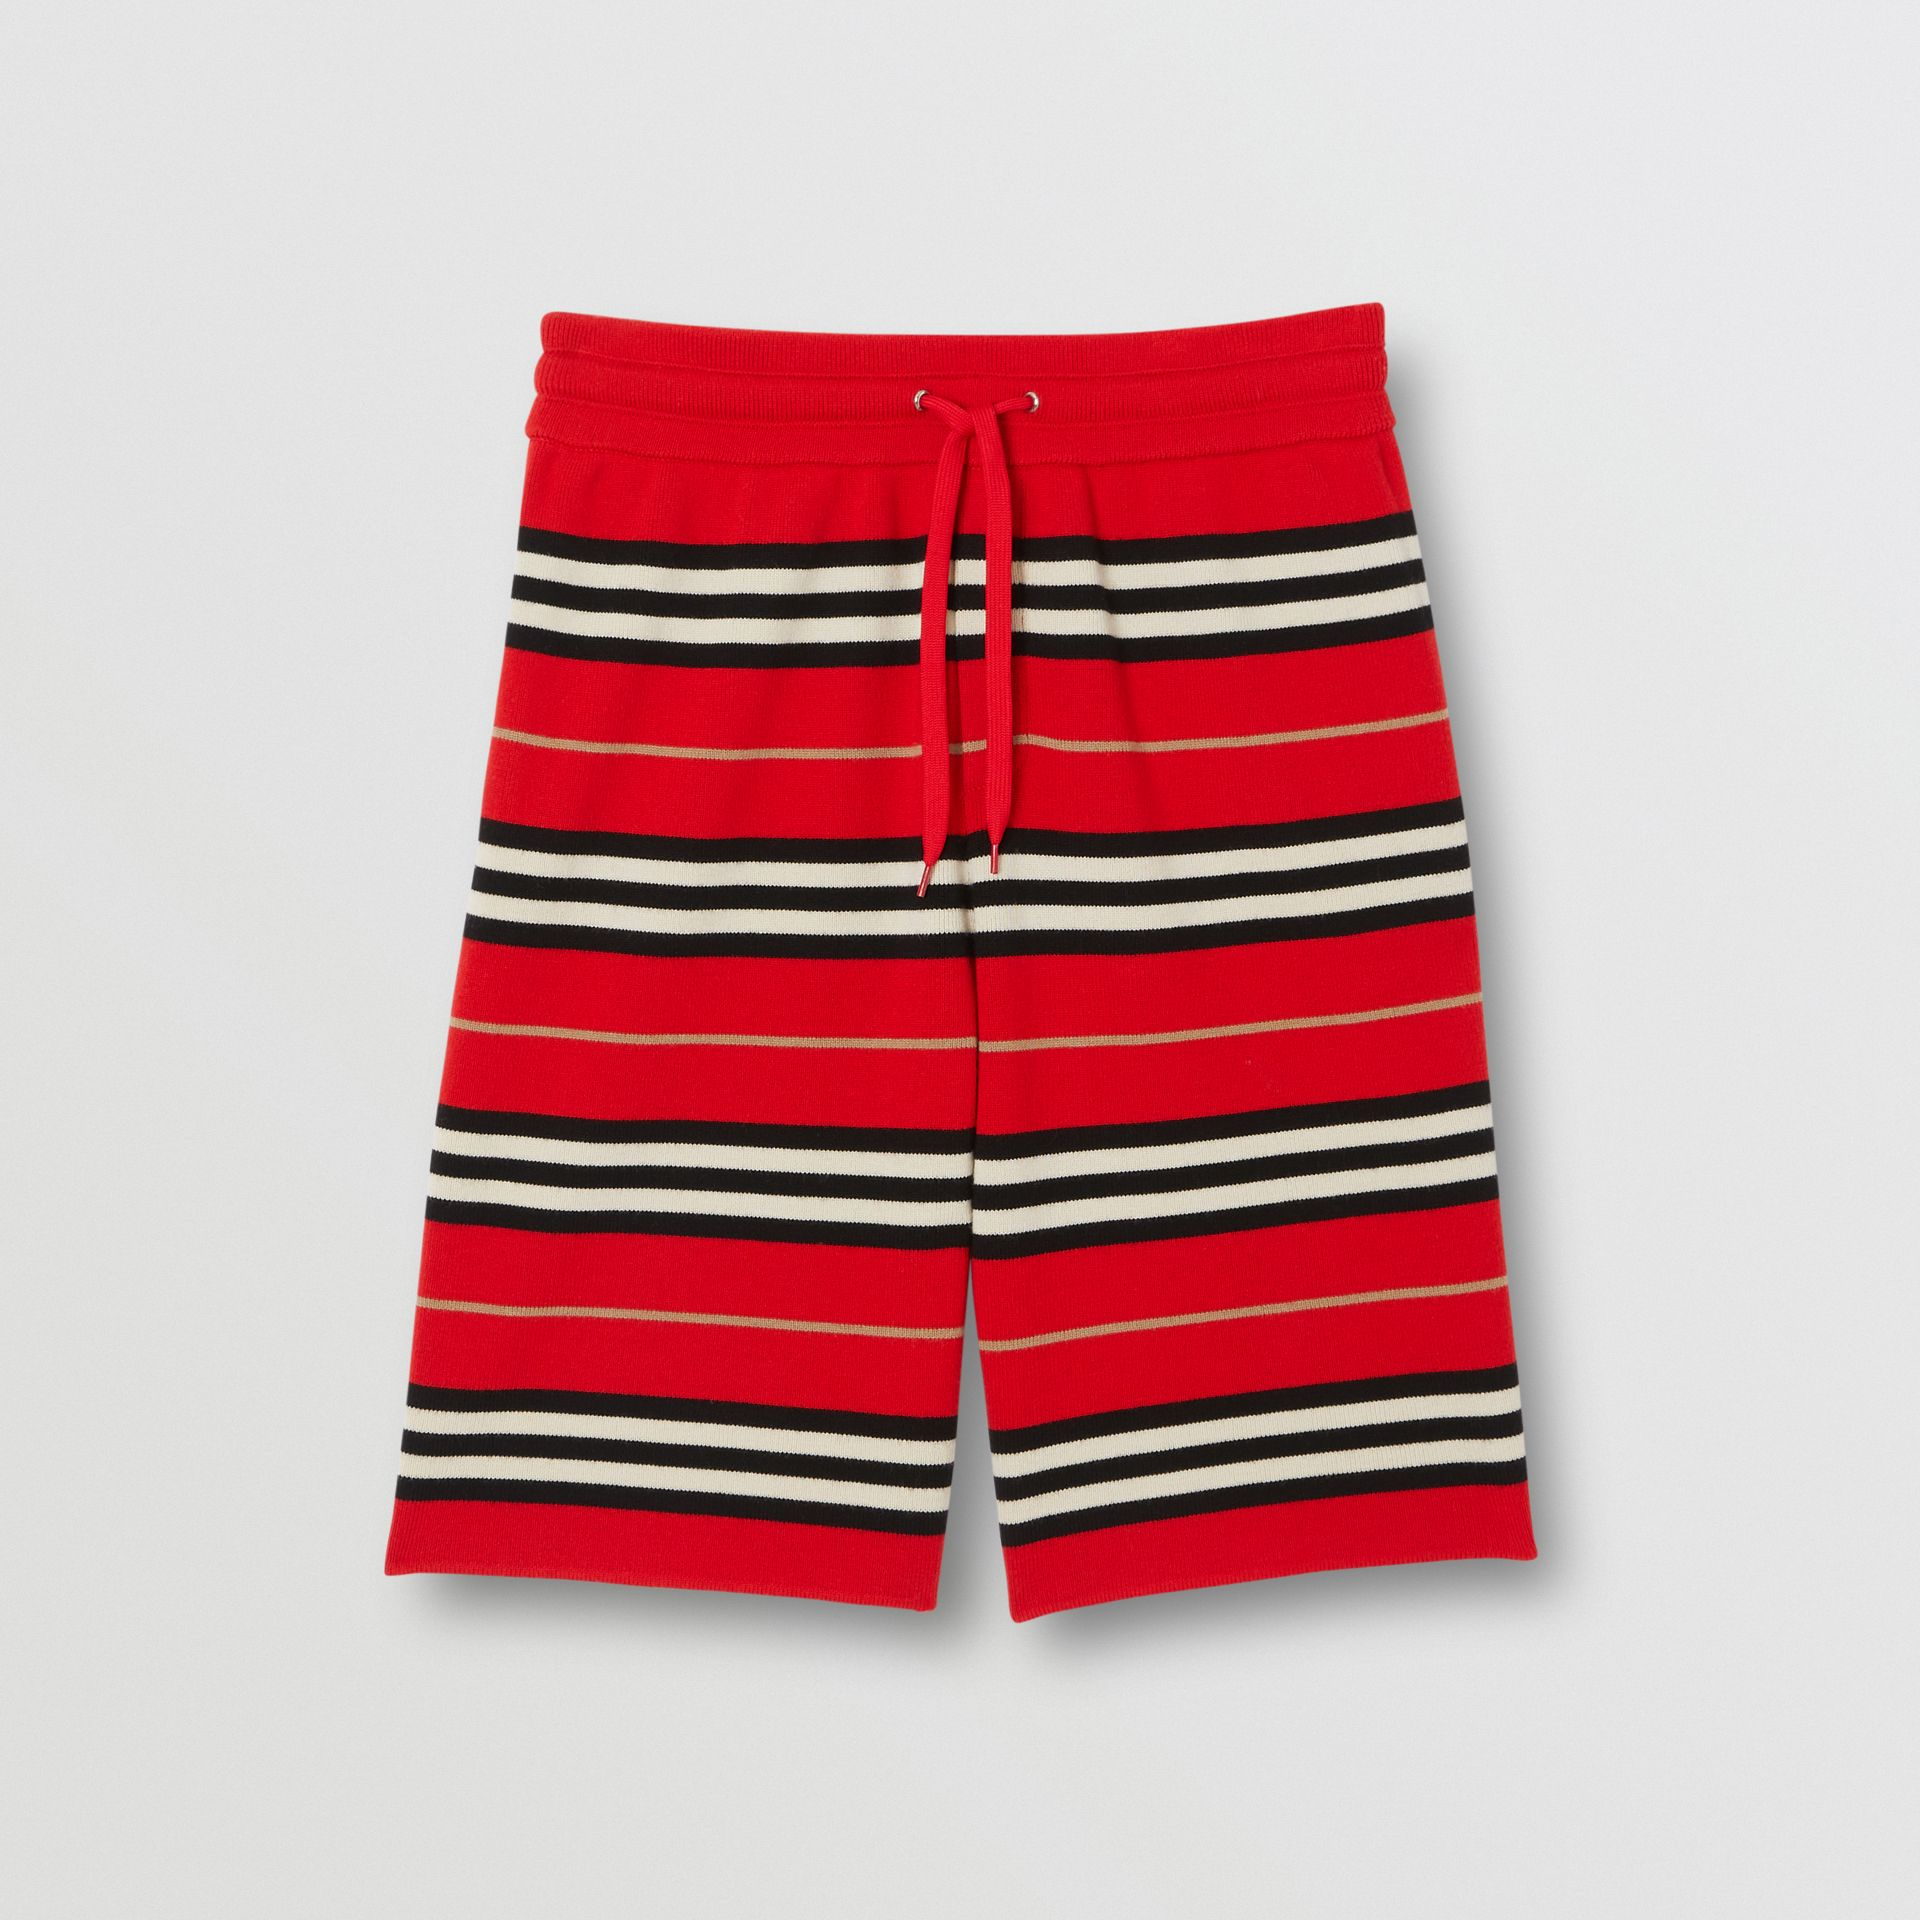 Merino Wool Drawcord Shorts in Bright Red - Men | Burberry - gallery image 3